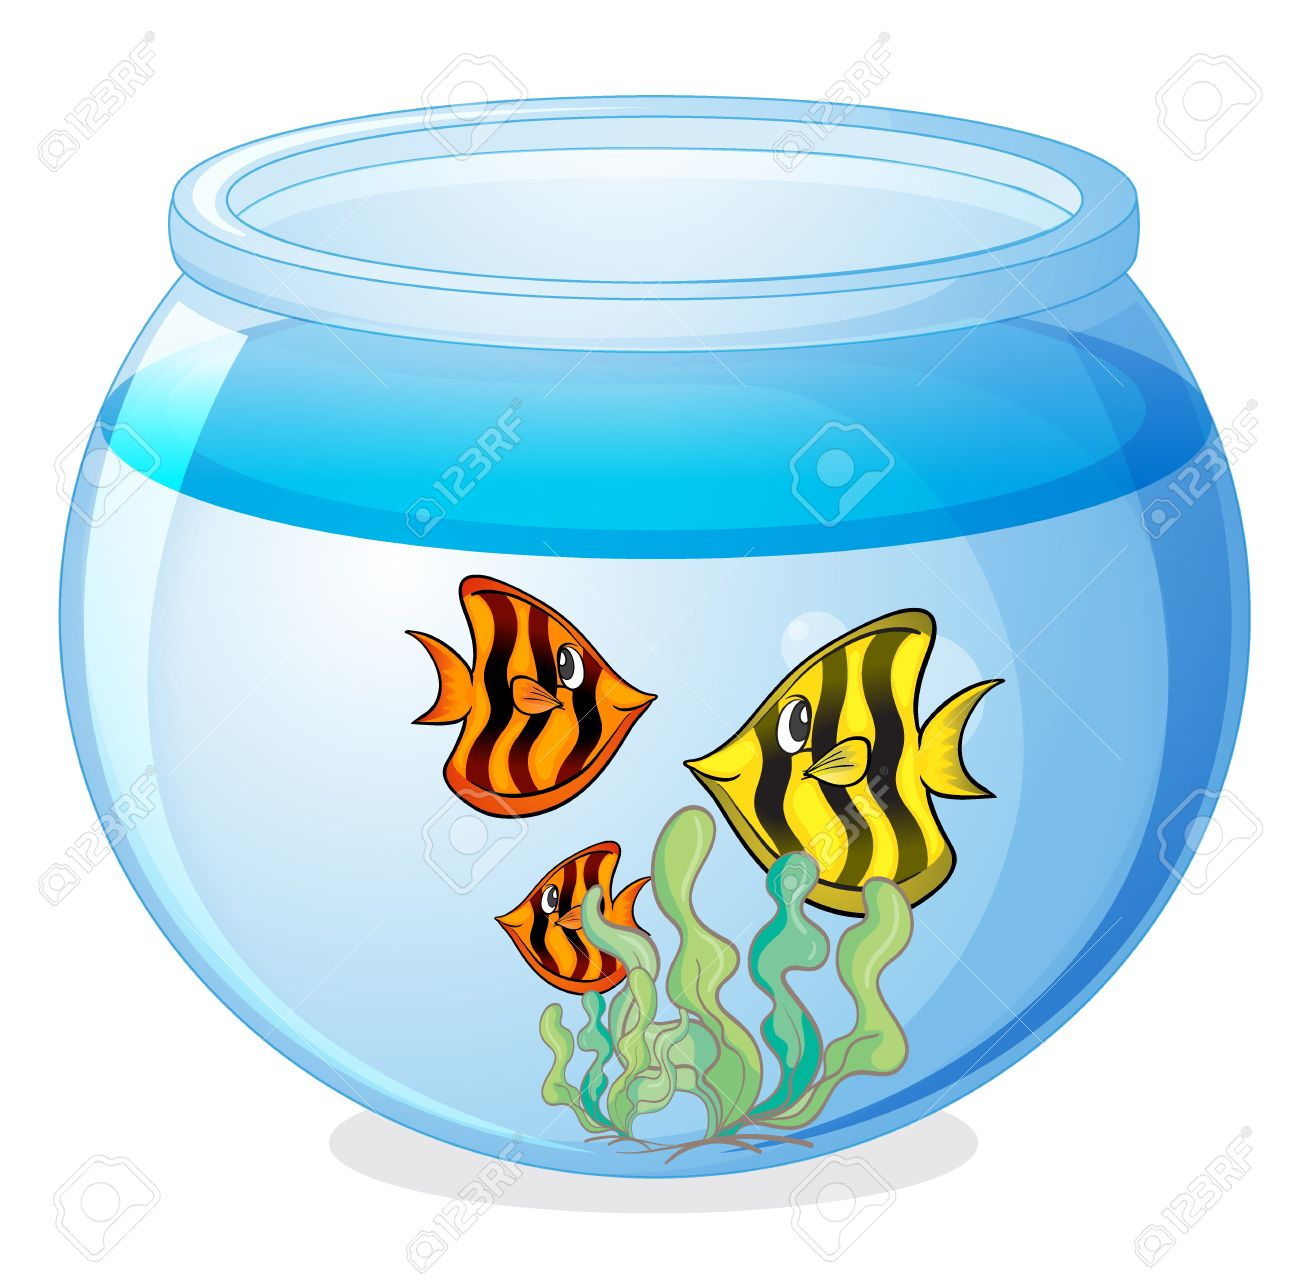 1300x1280 Illustration Of A Water Bowl And A Fish On A White Background